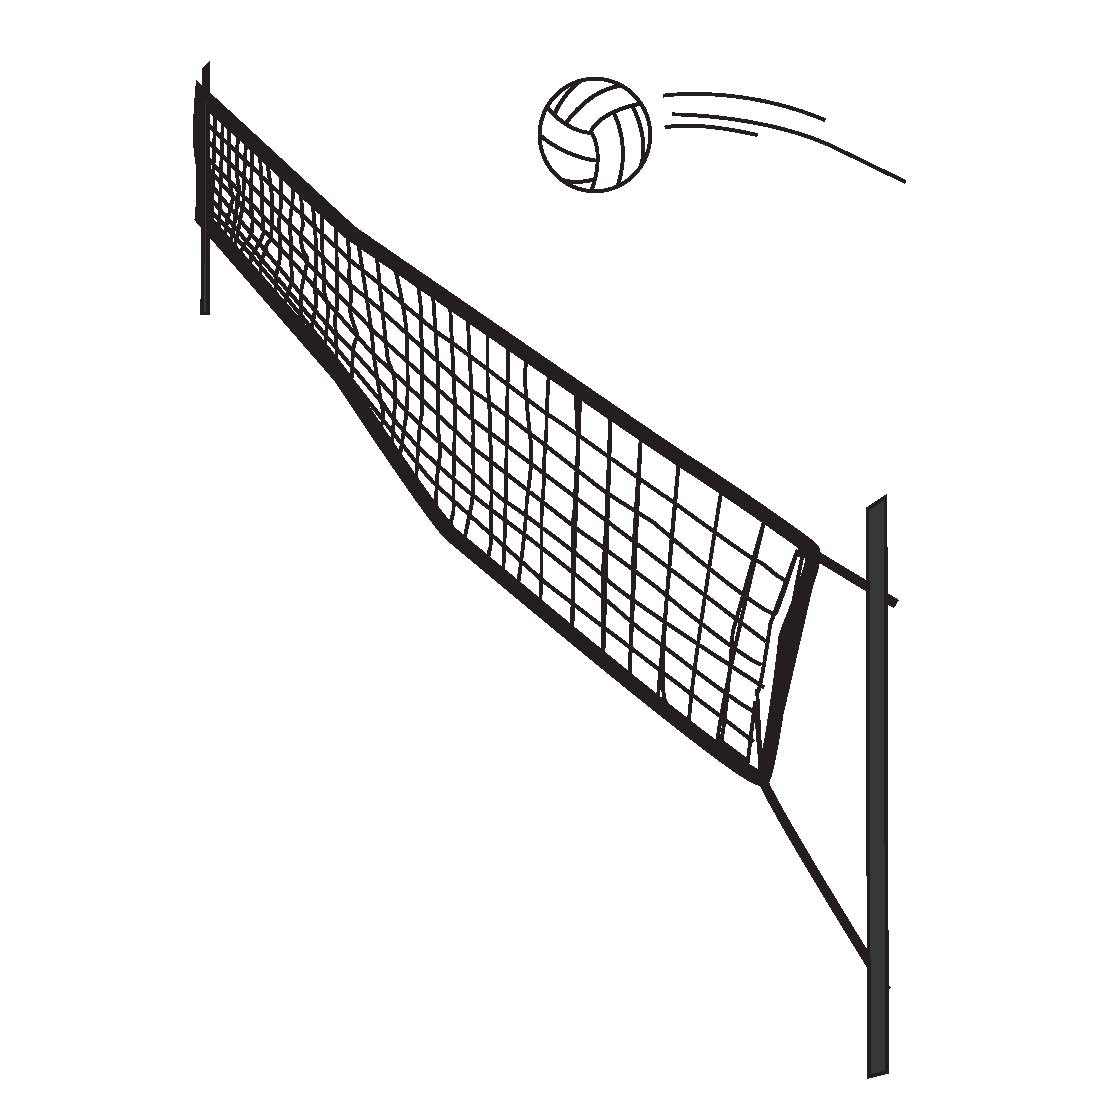 402 Volleyball Net free clipart.